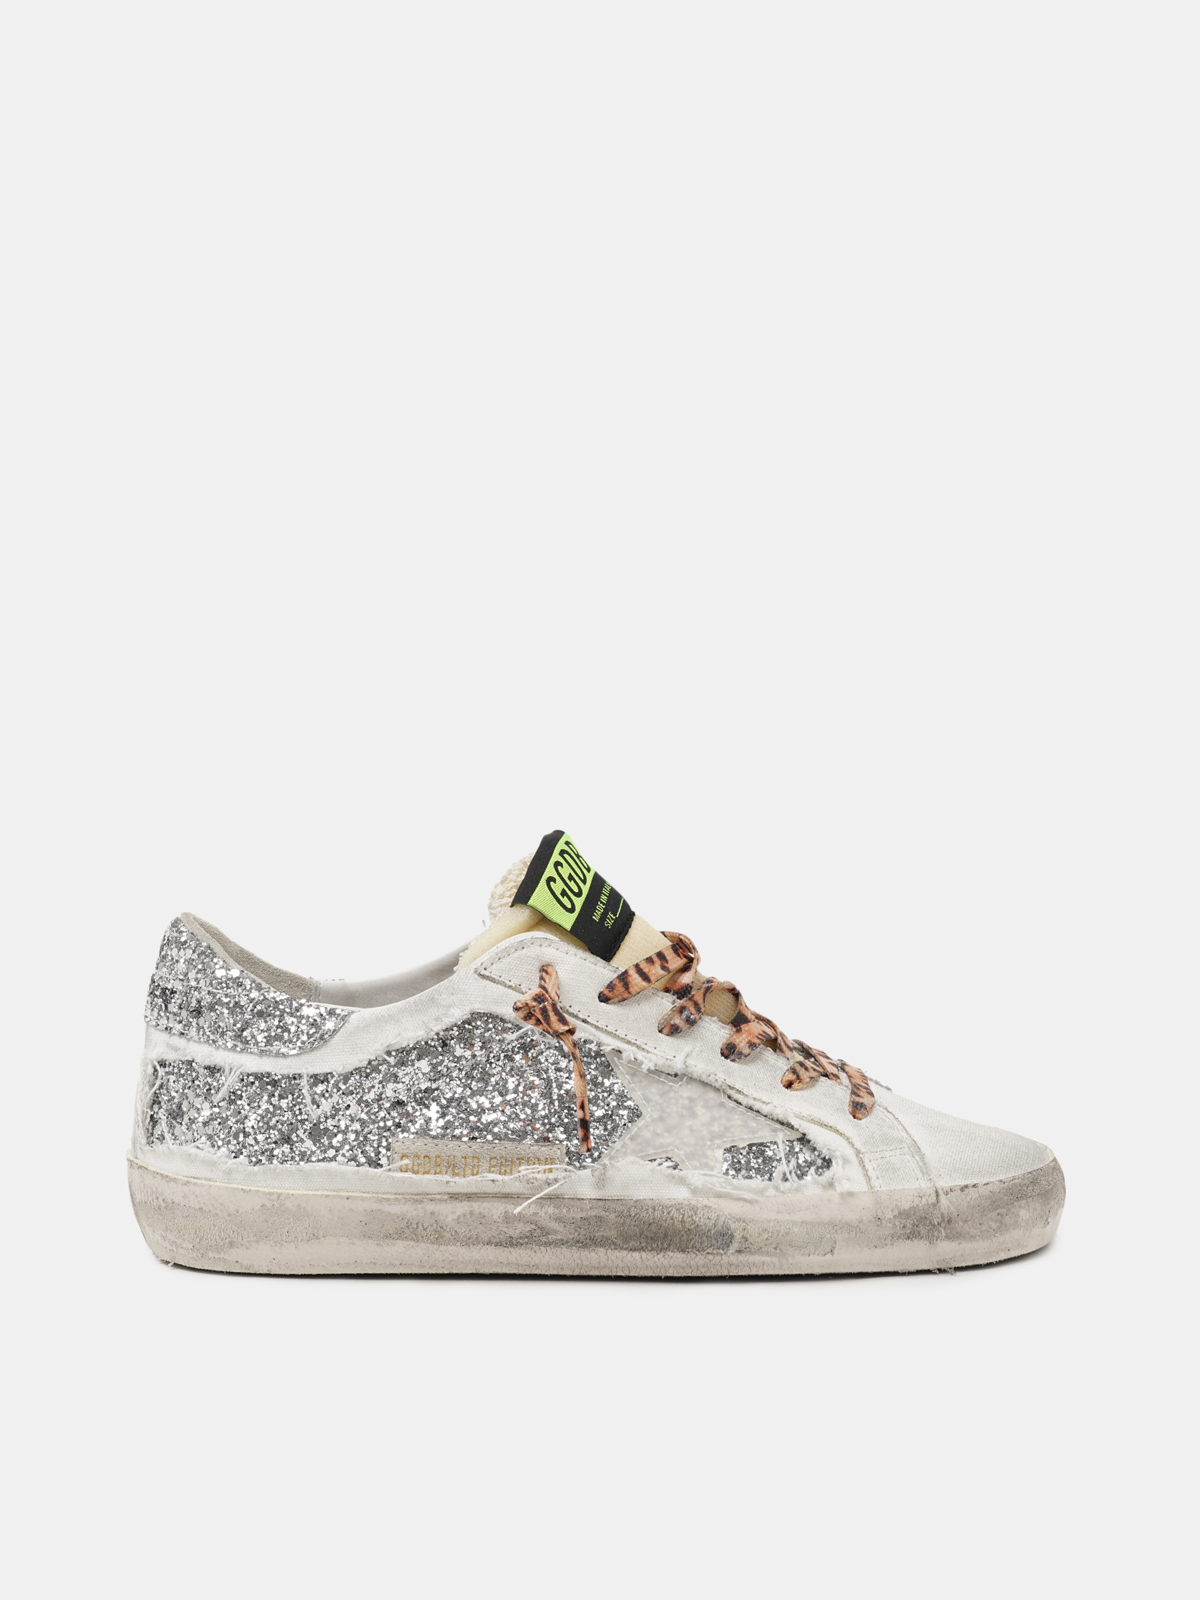 Golden Goose - Women's Limited Edition LAB Super-Star sneakers with glitter and leopard-print laces in